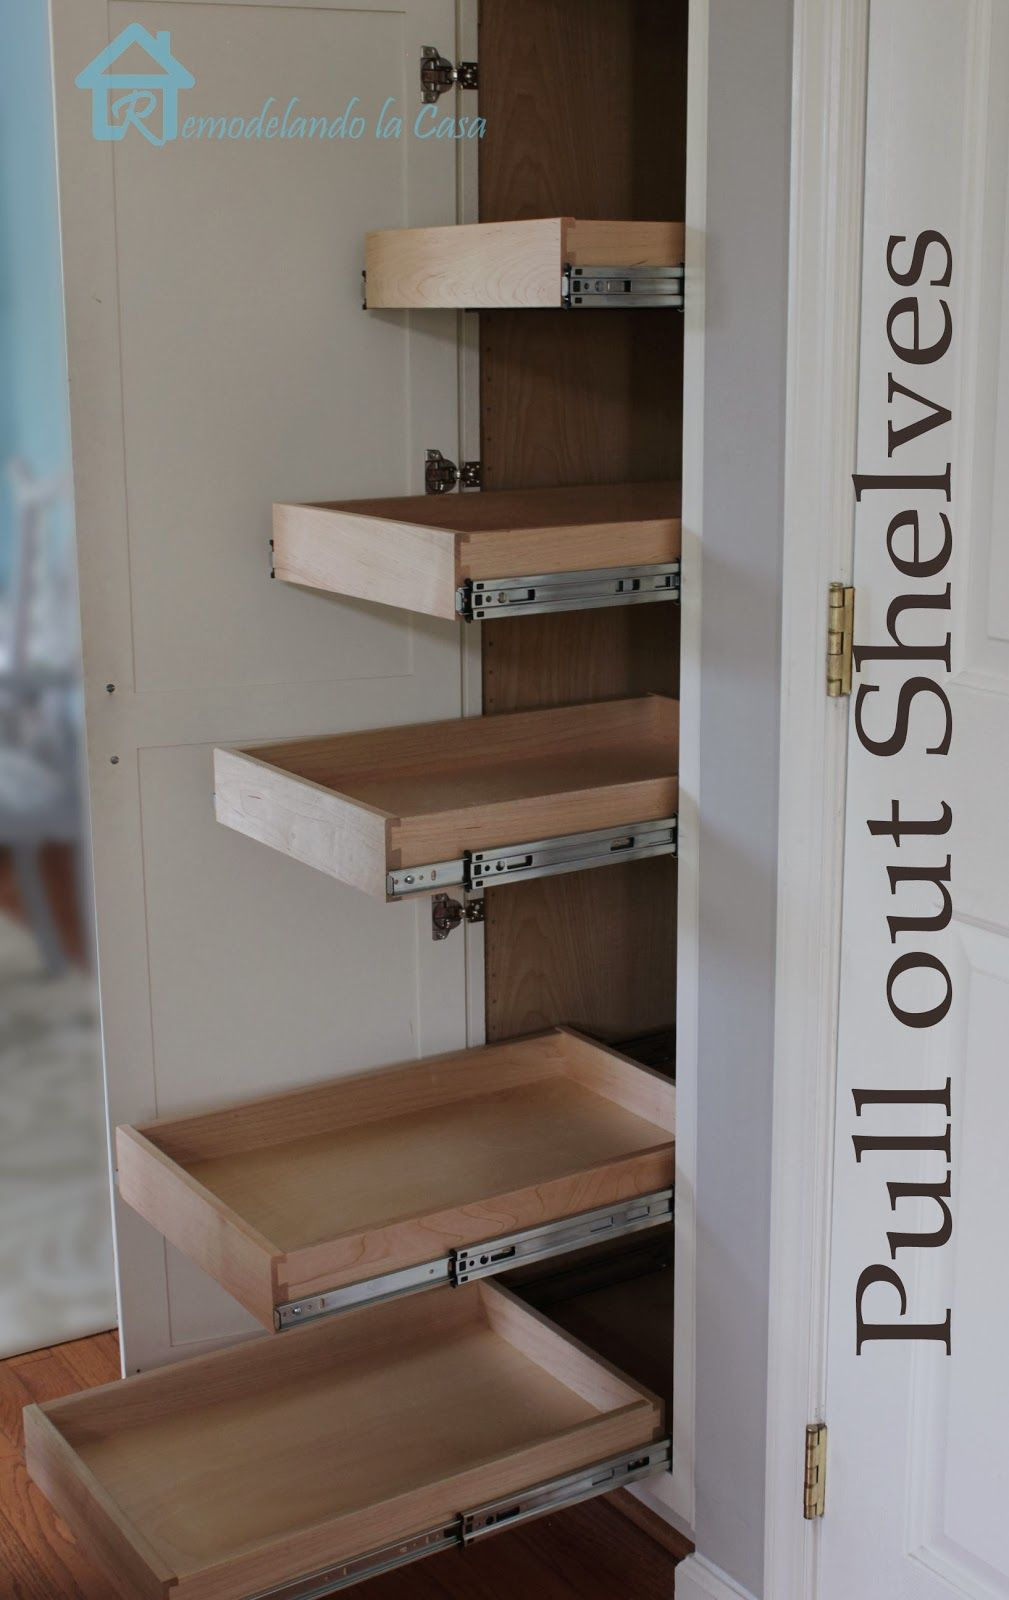 Captivating Kitchen Organization   Pull Out Shelves In Pantry